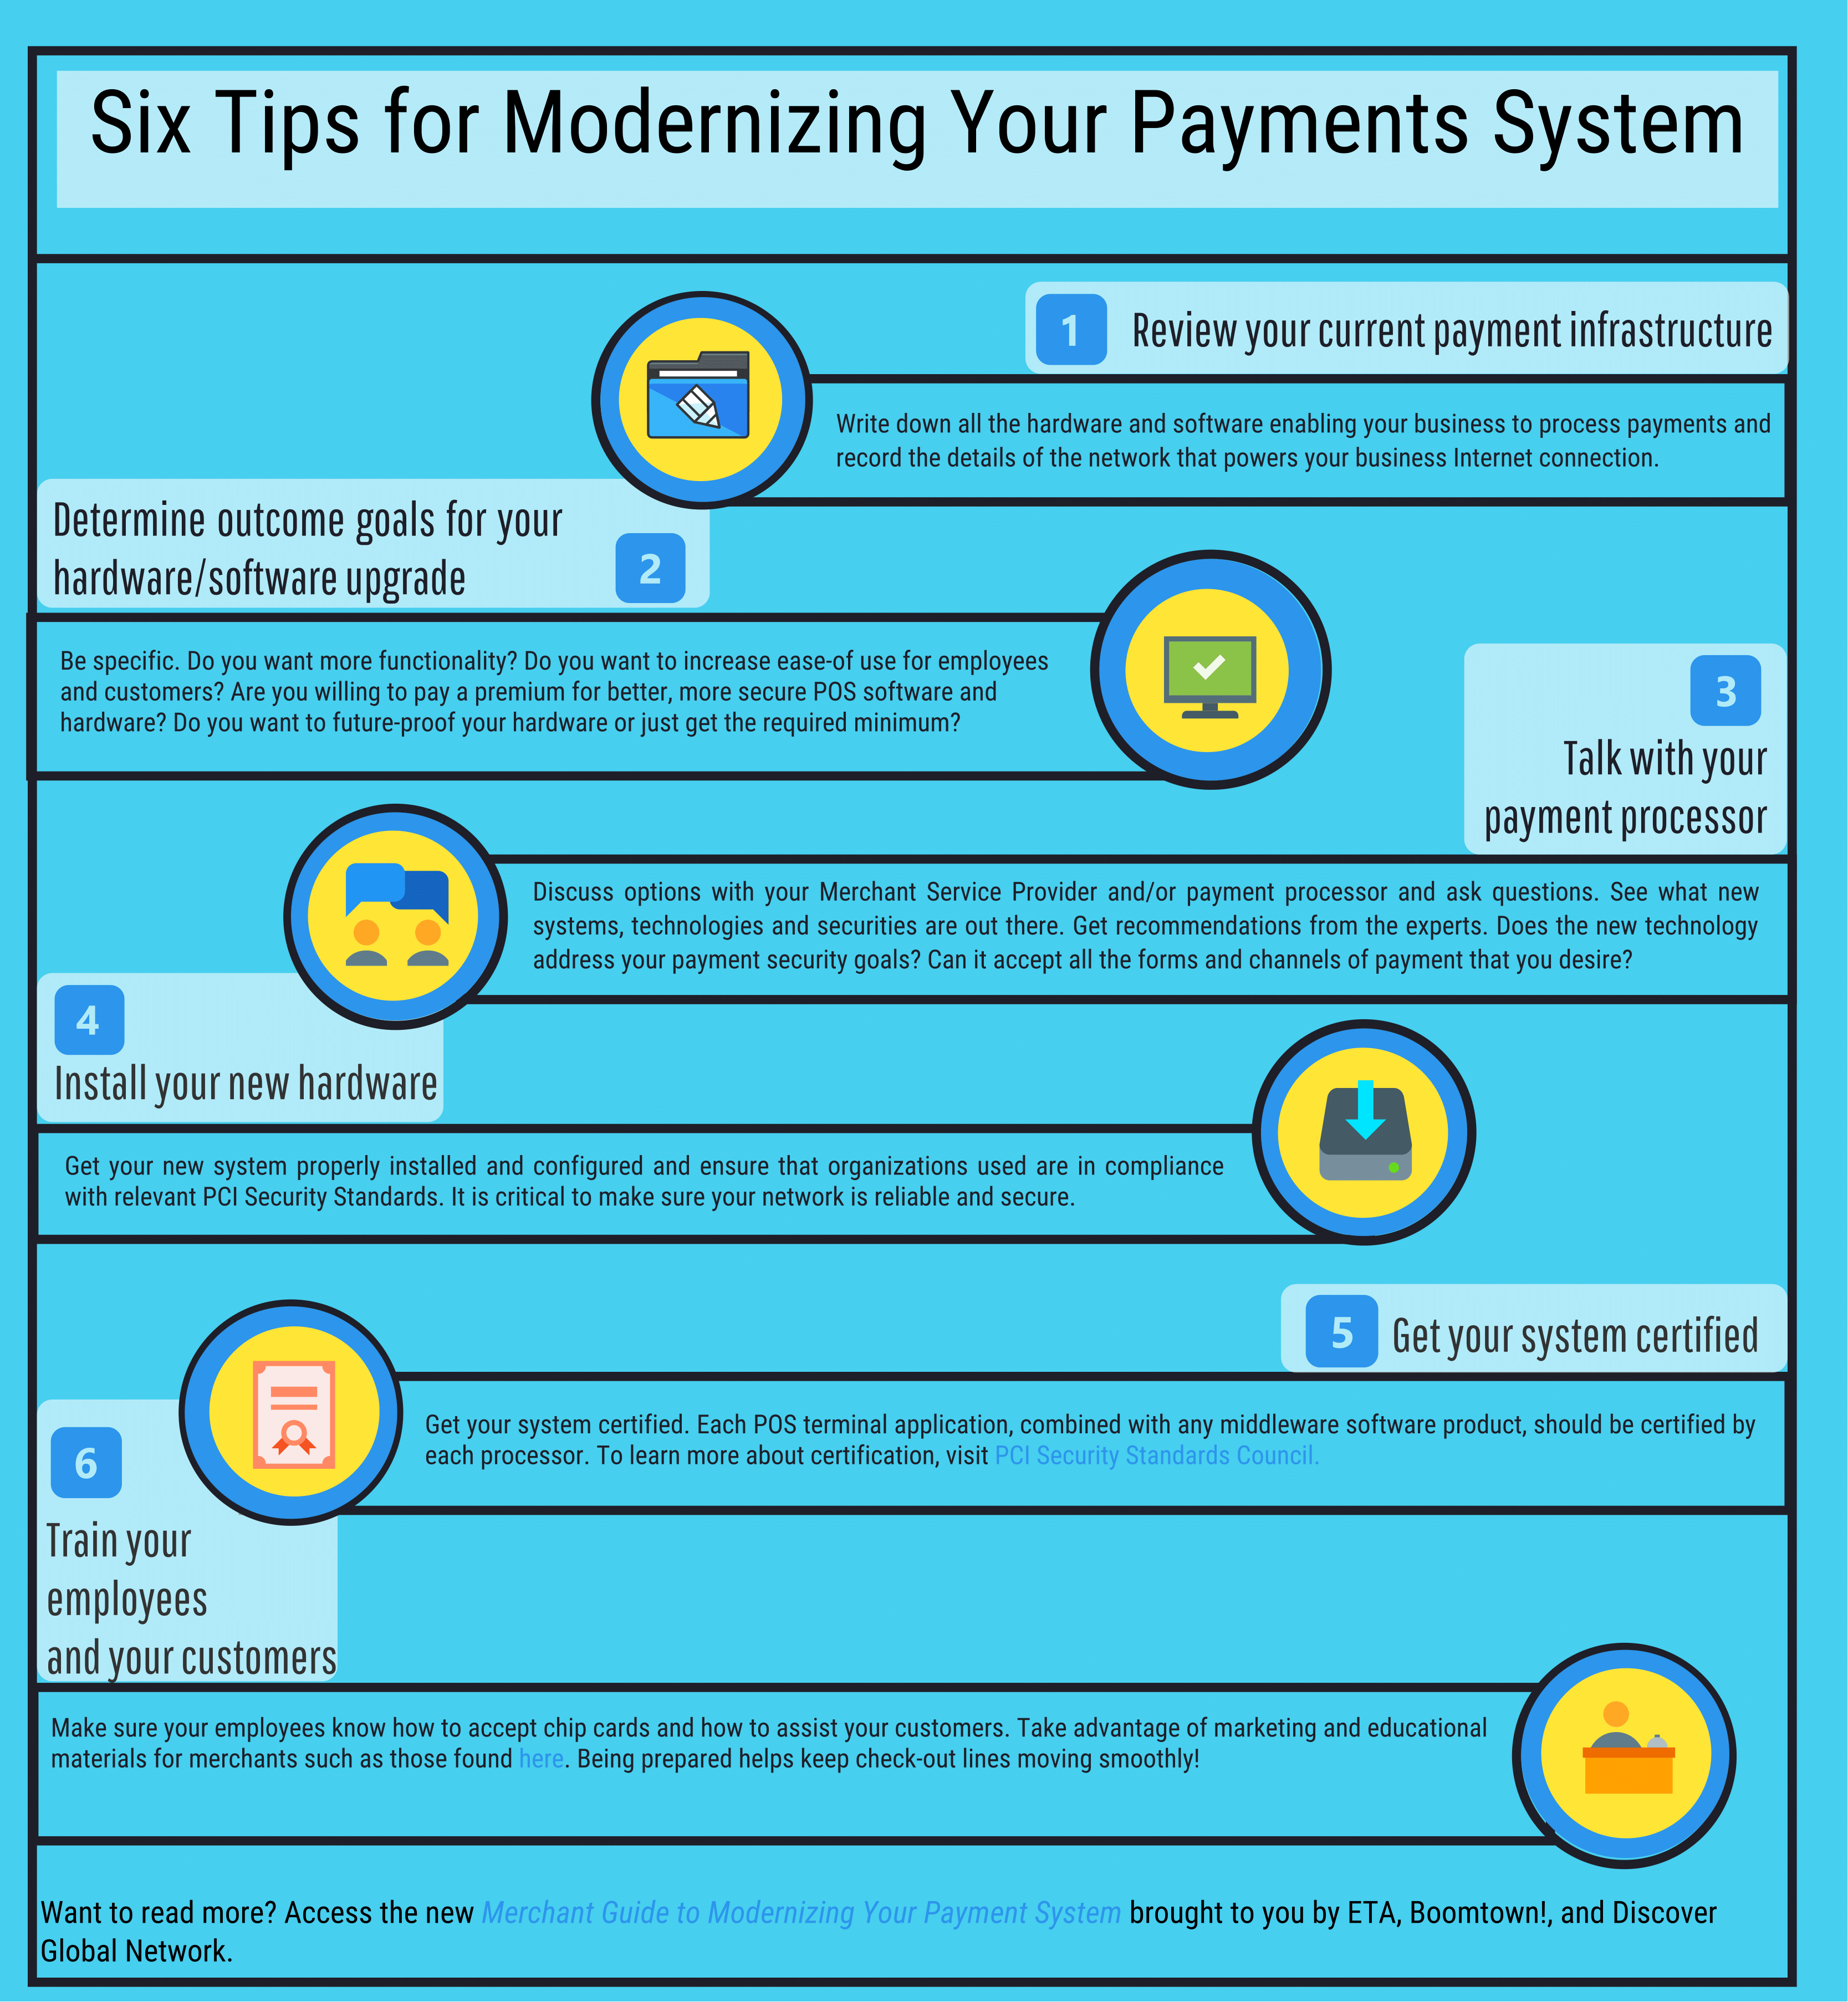 EMV Compliance: Merchant Guide to Modernizing Your Payment System